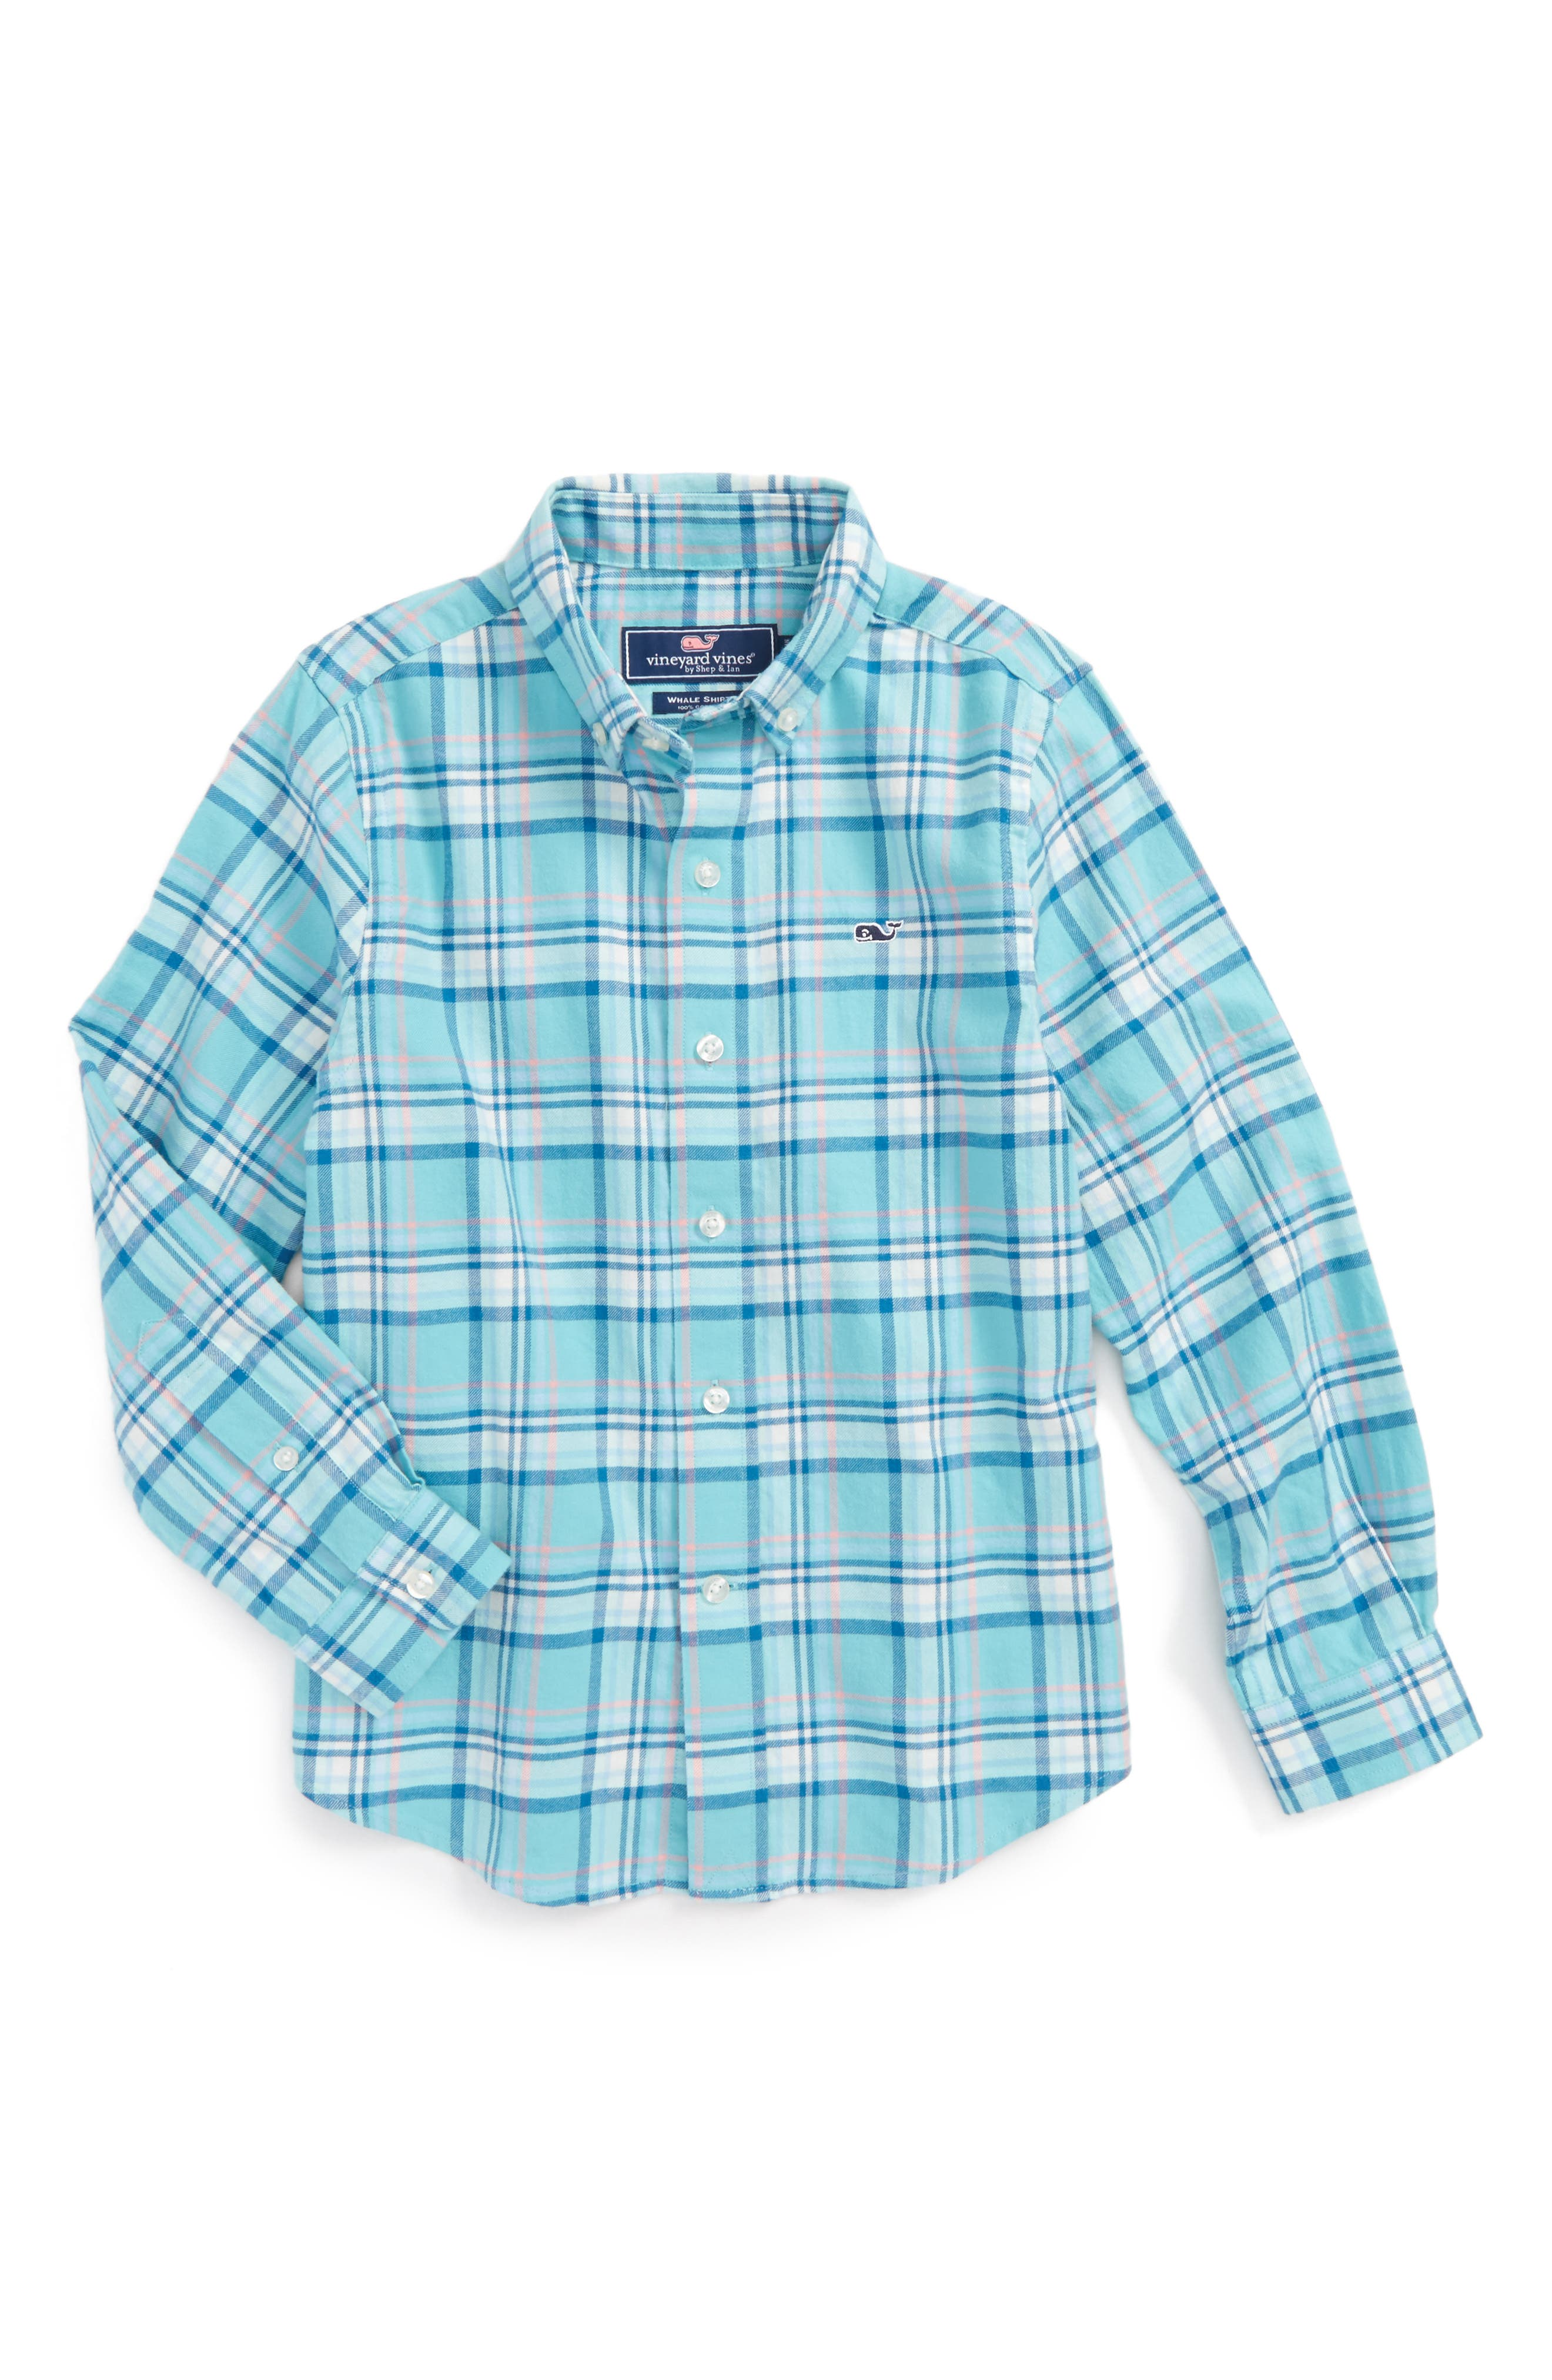 Loblolly Plaid Shirt,                         Main,                         color, 442